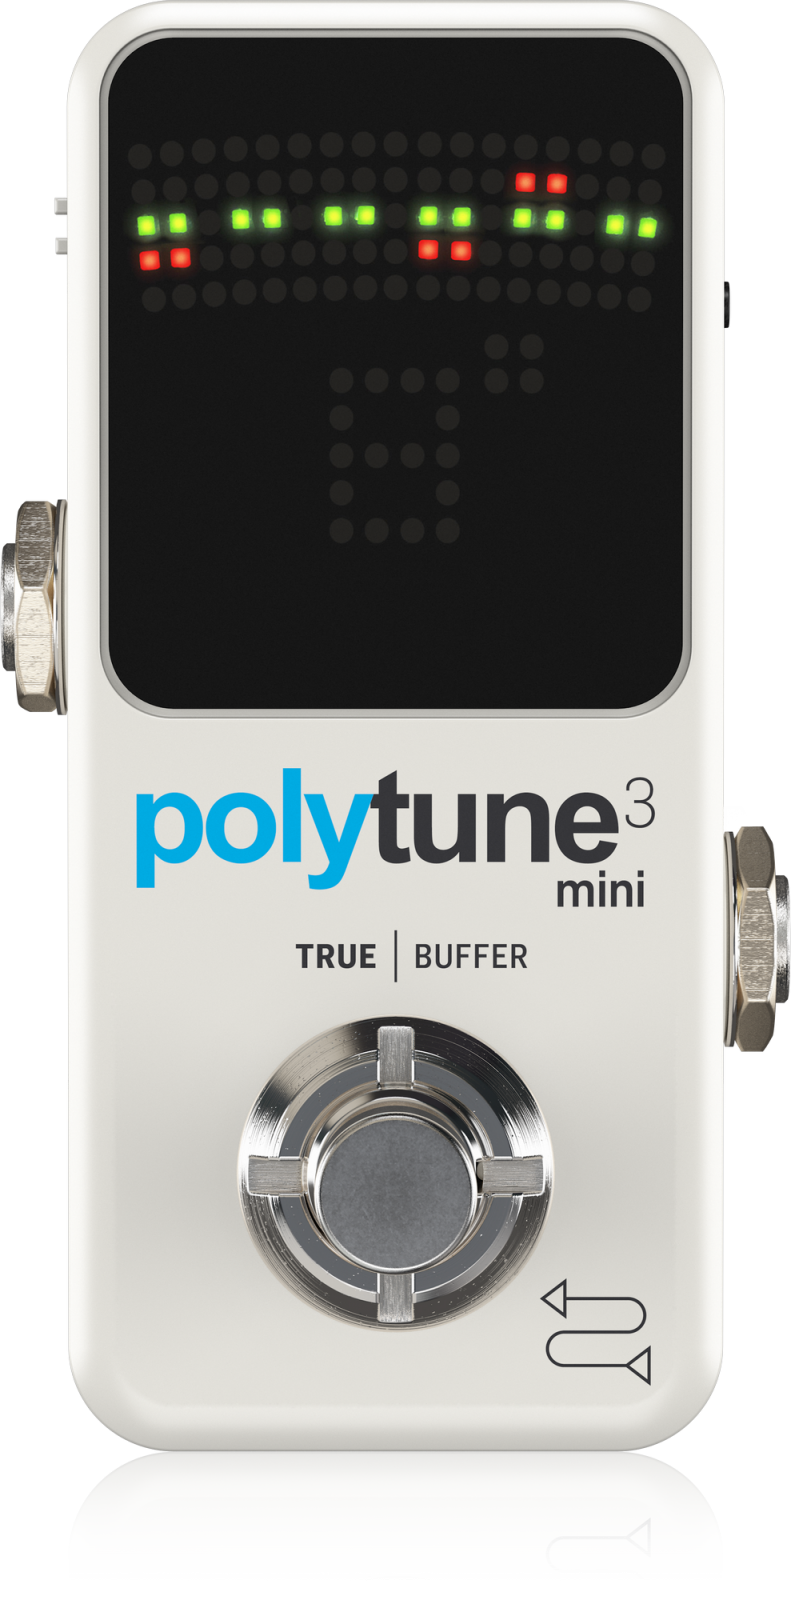 TC ELECTRONIC POLYTUNE 3 MINI ULTRA-COMPACT TUNER PEDAL WHITE